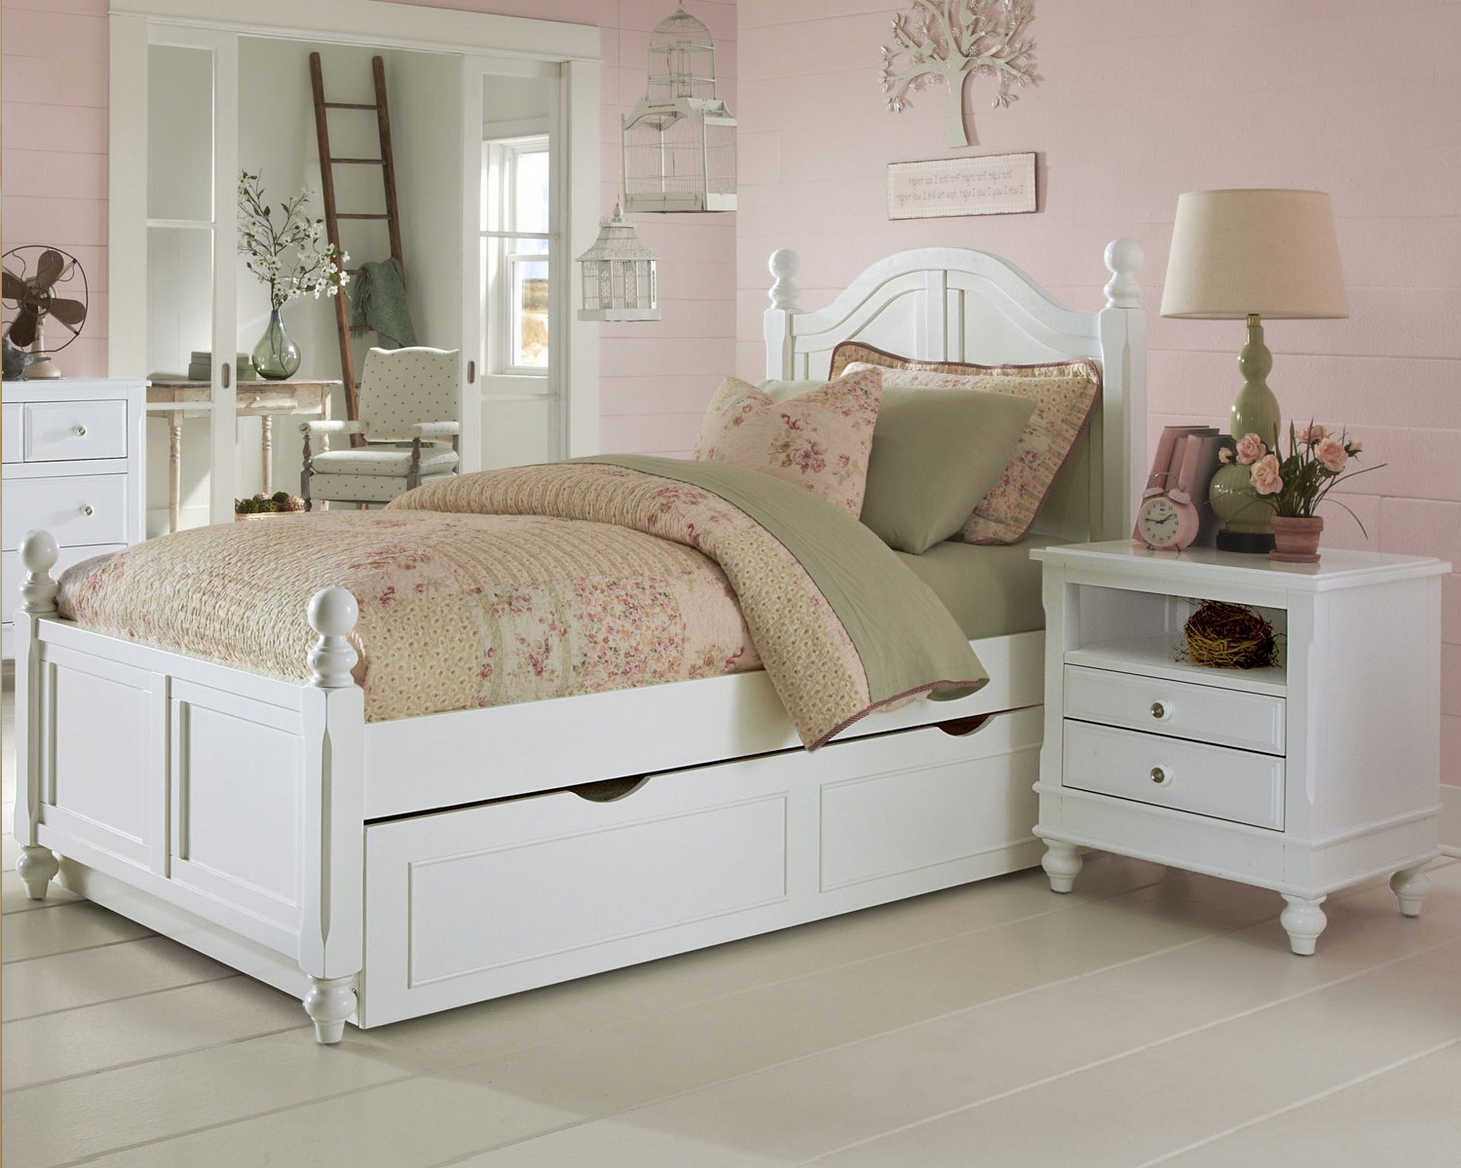 Beach House Collection Curved Bed In White Kids Furniture In Los Angeles